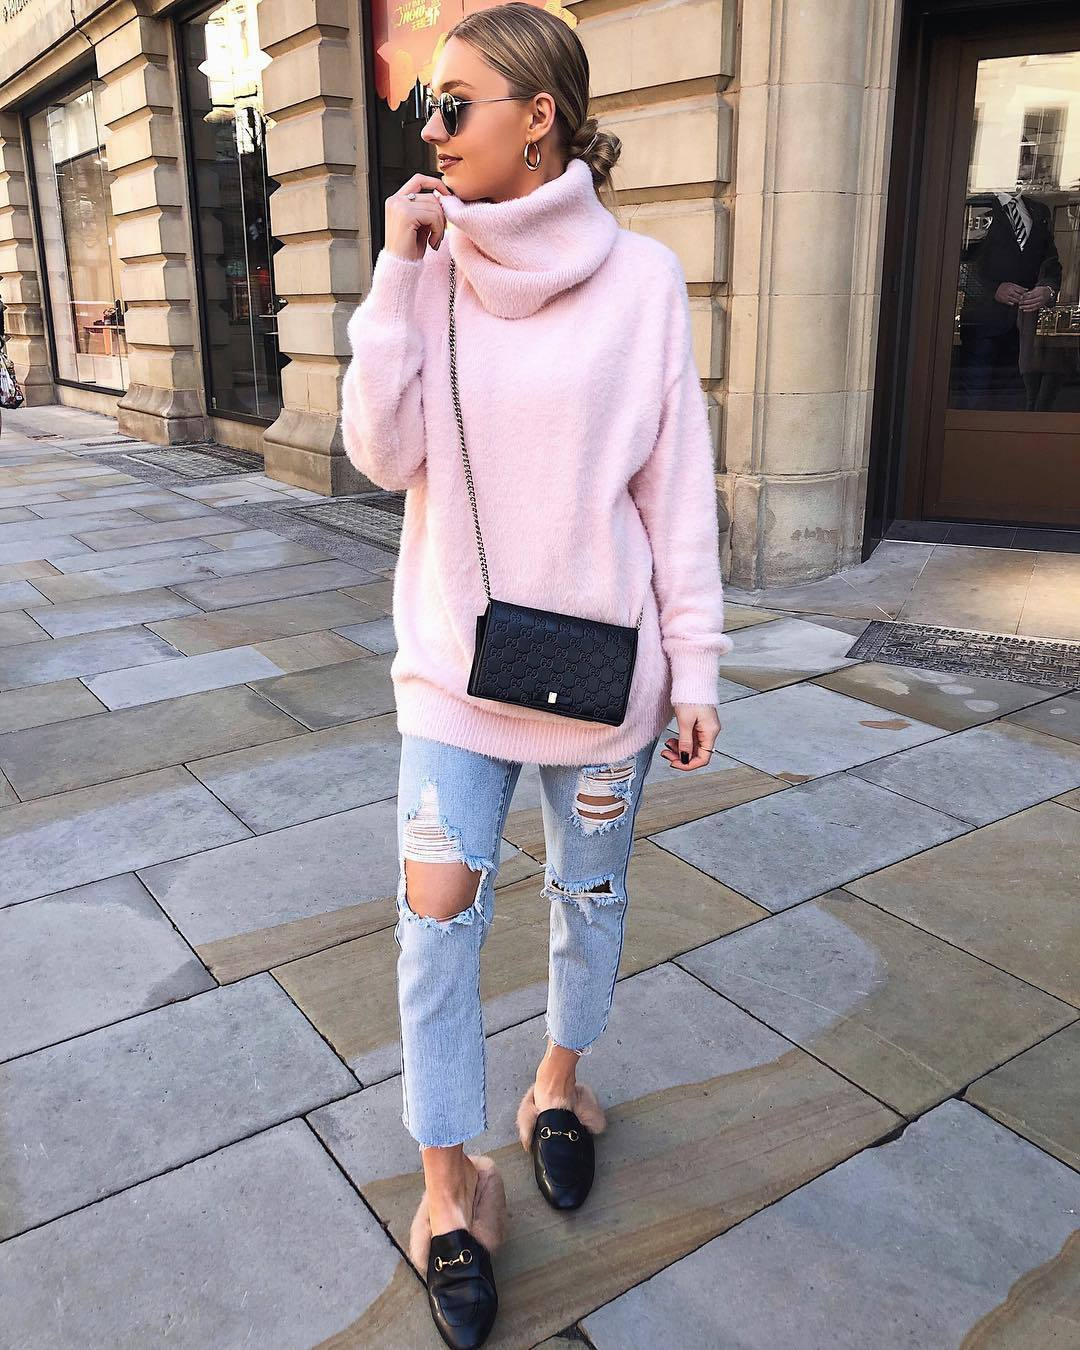 sweater turtleneck sweater pink sweater knitted sweater black loafers mules cropped jeans ripped jeans black bag crossbody bag